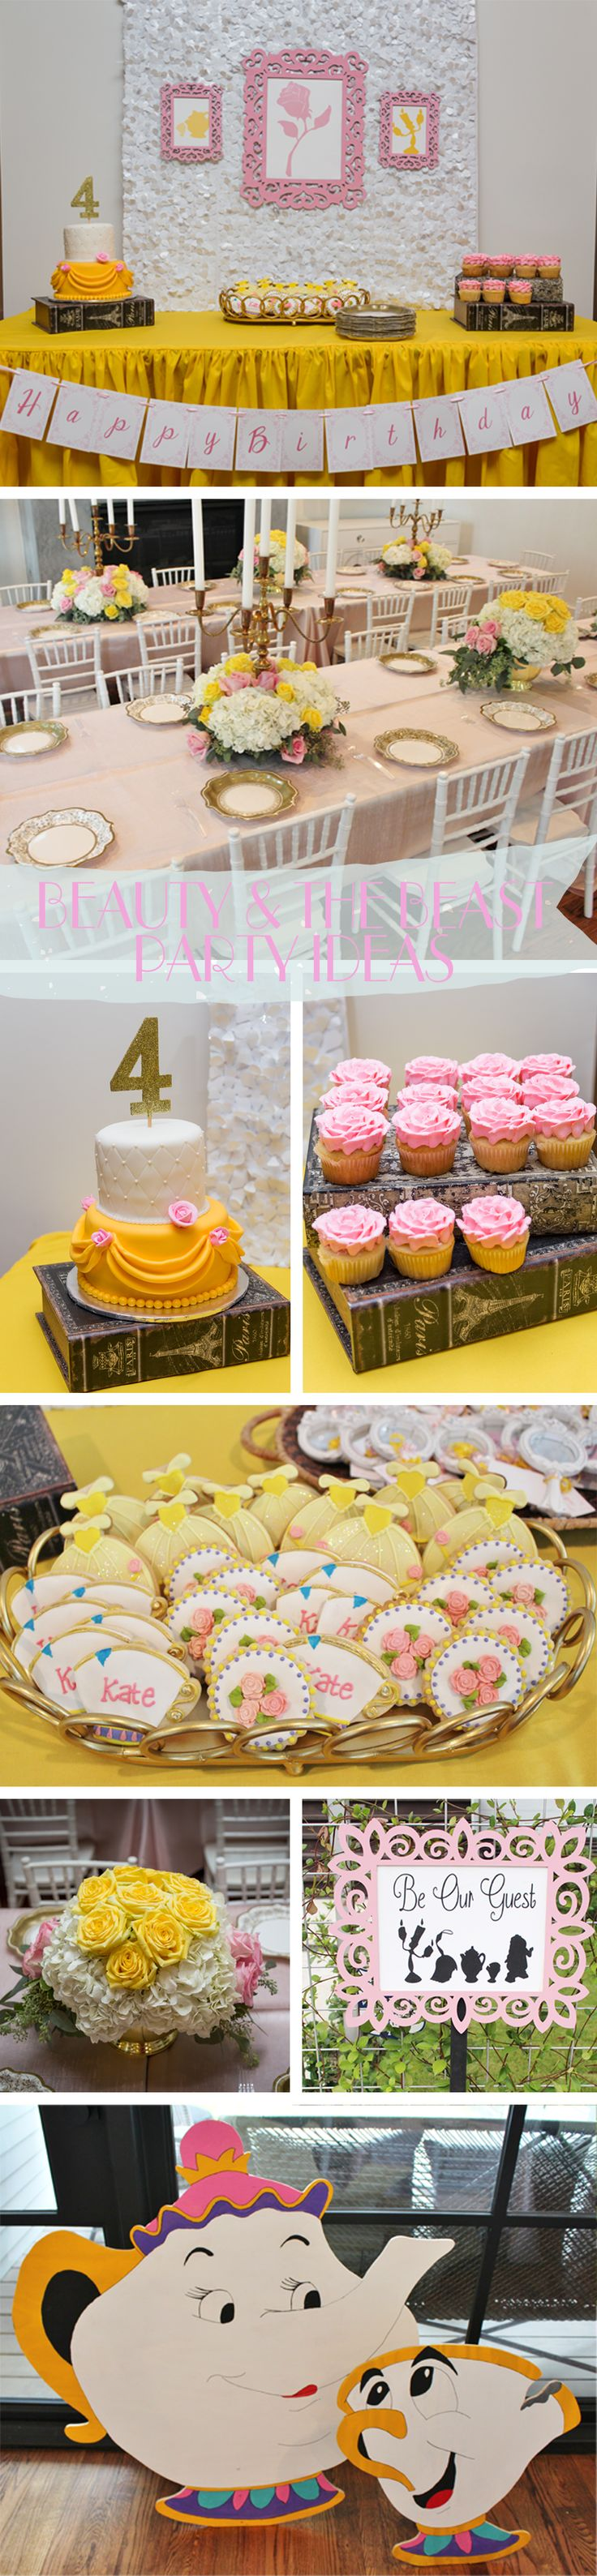 Princess Belle Party Ideas, Beauty and the Beast